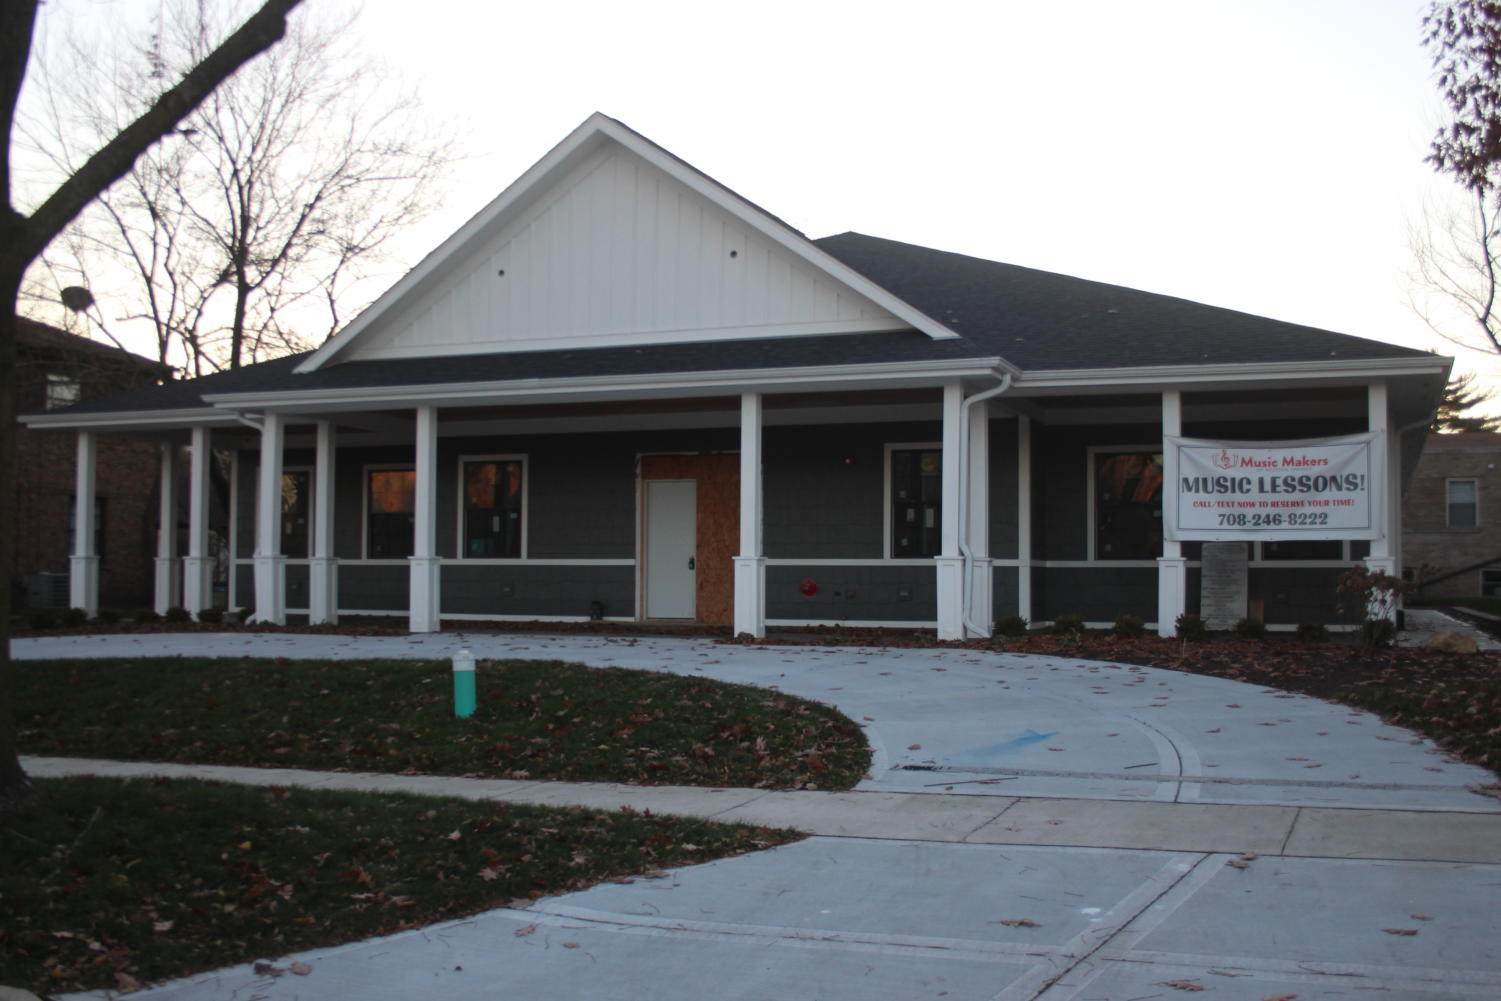 New Music Makers building in Western Springs, located at 4332 Howard Ave. (McCormick/LION).